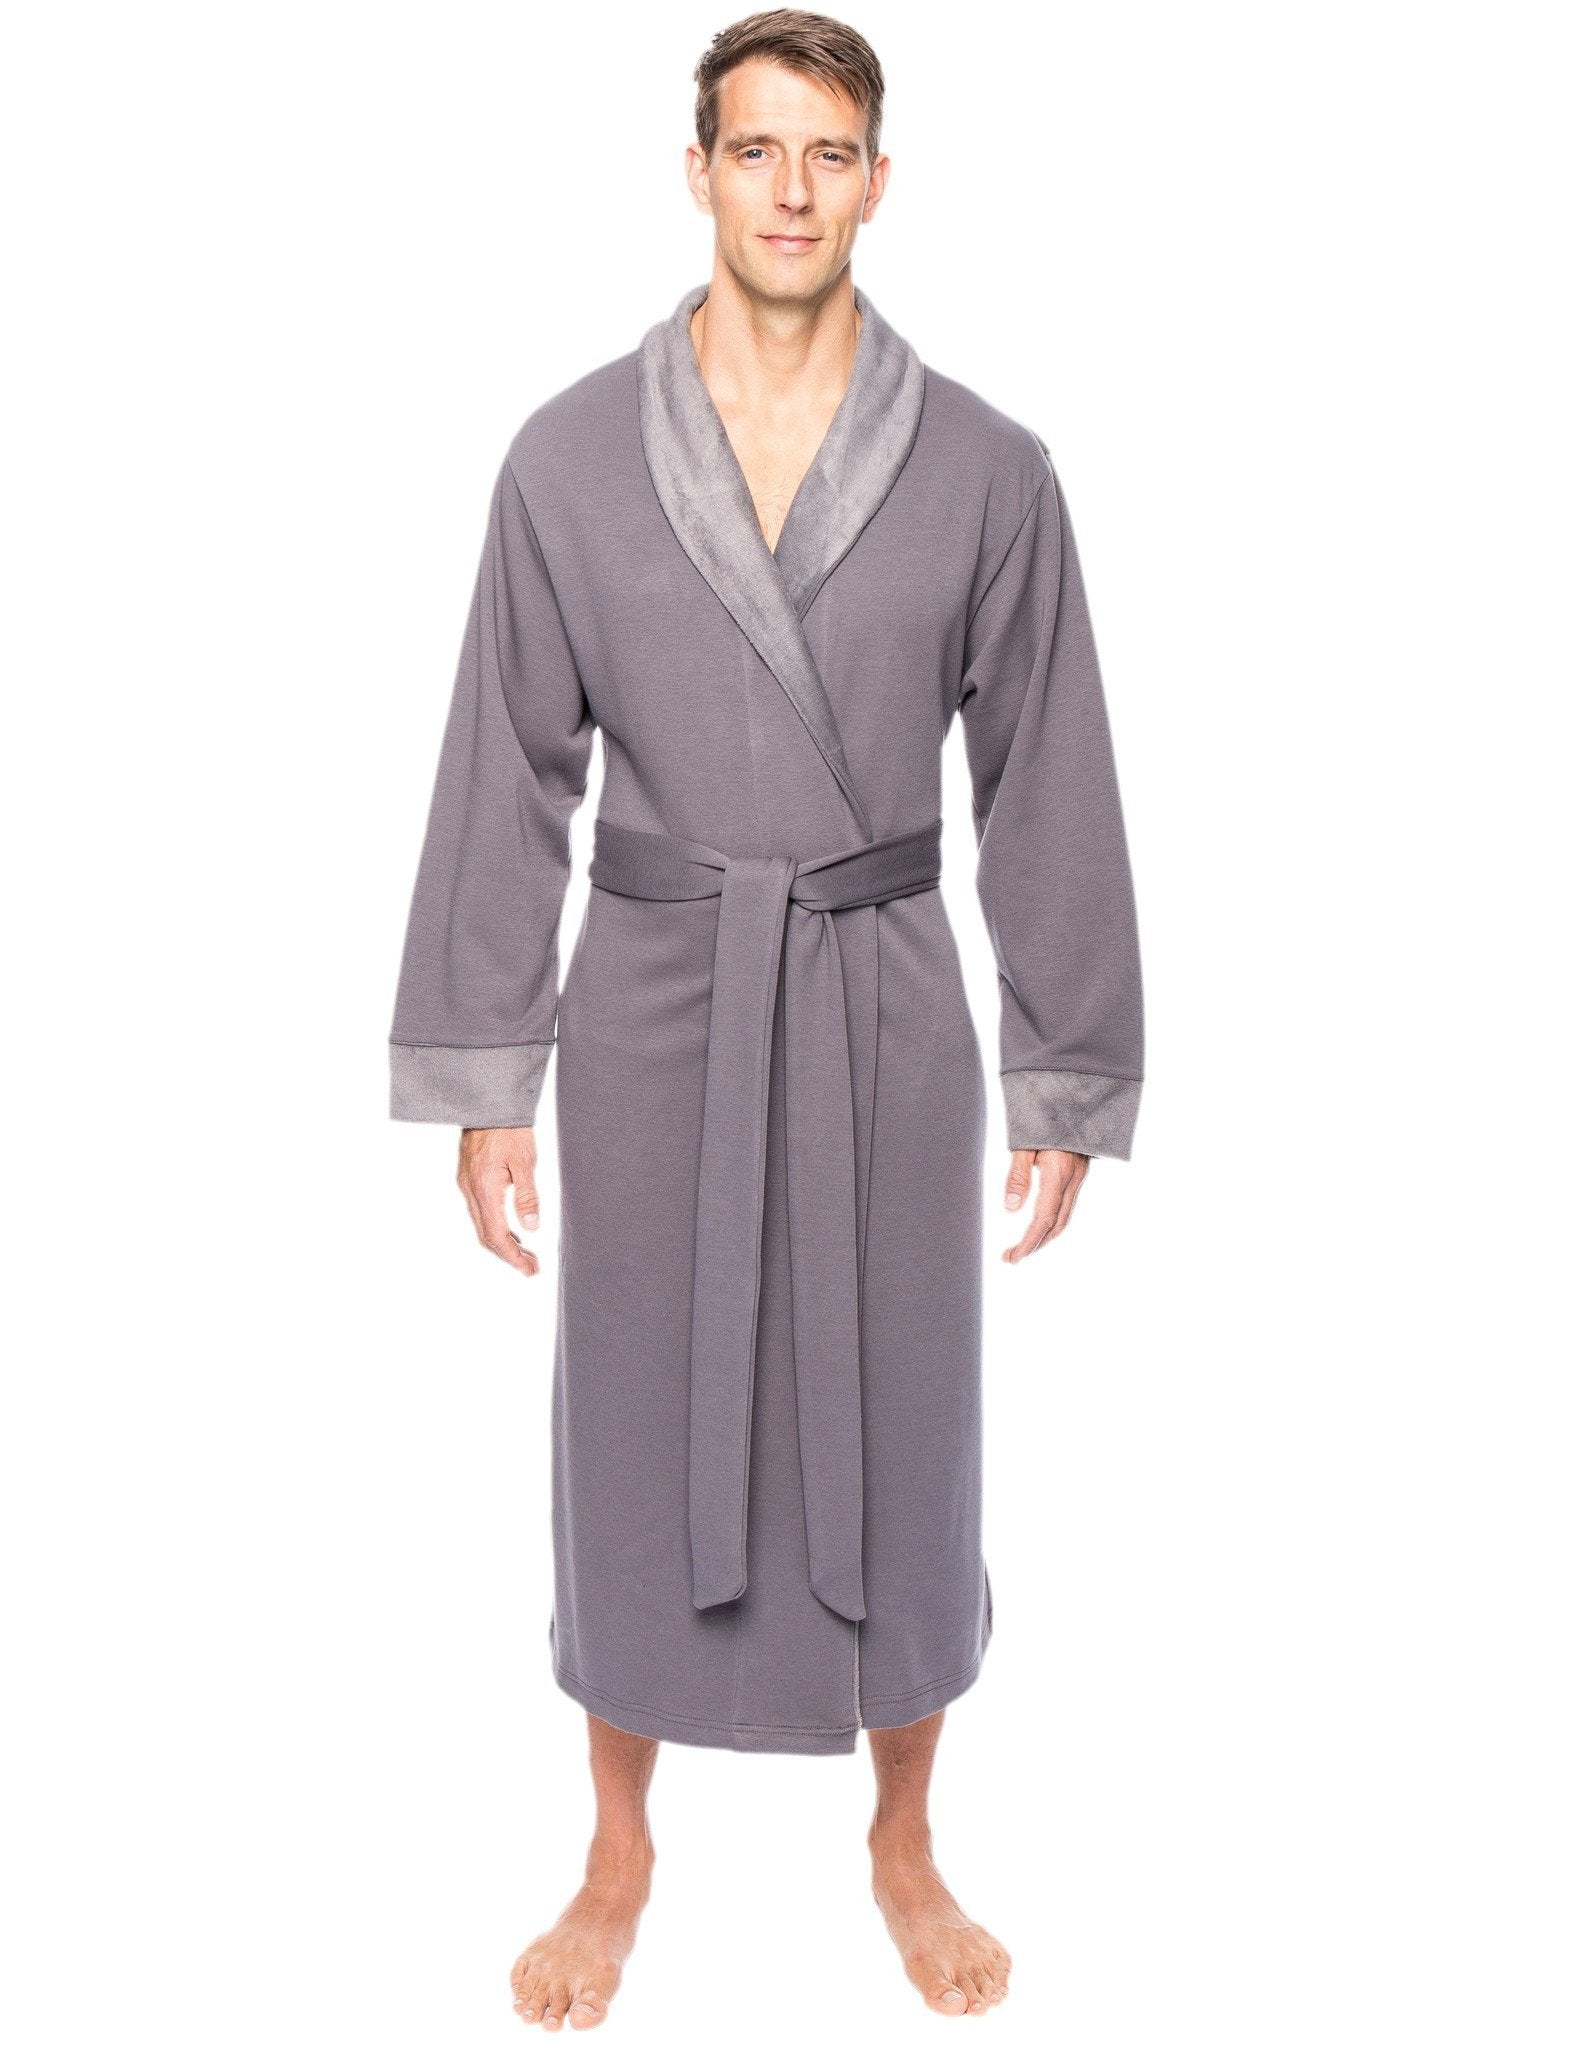 Men's Super Soft Brushed Robe - Dark Grey